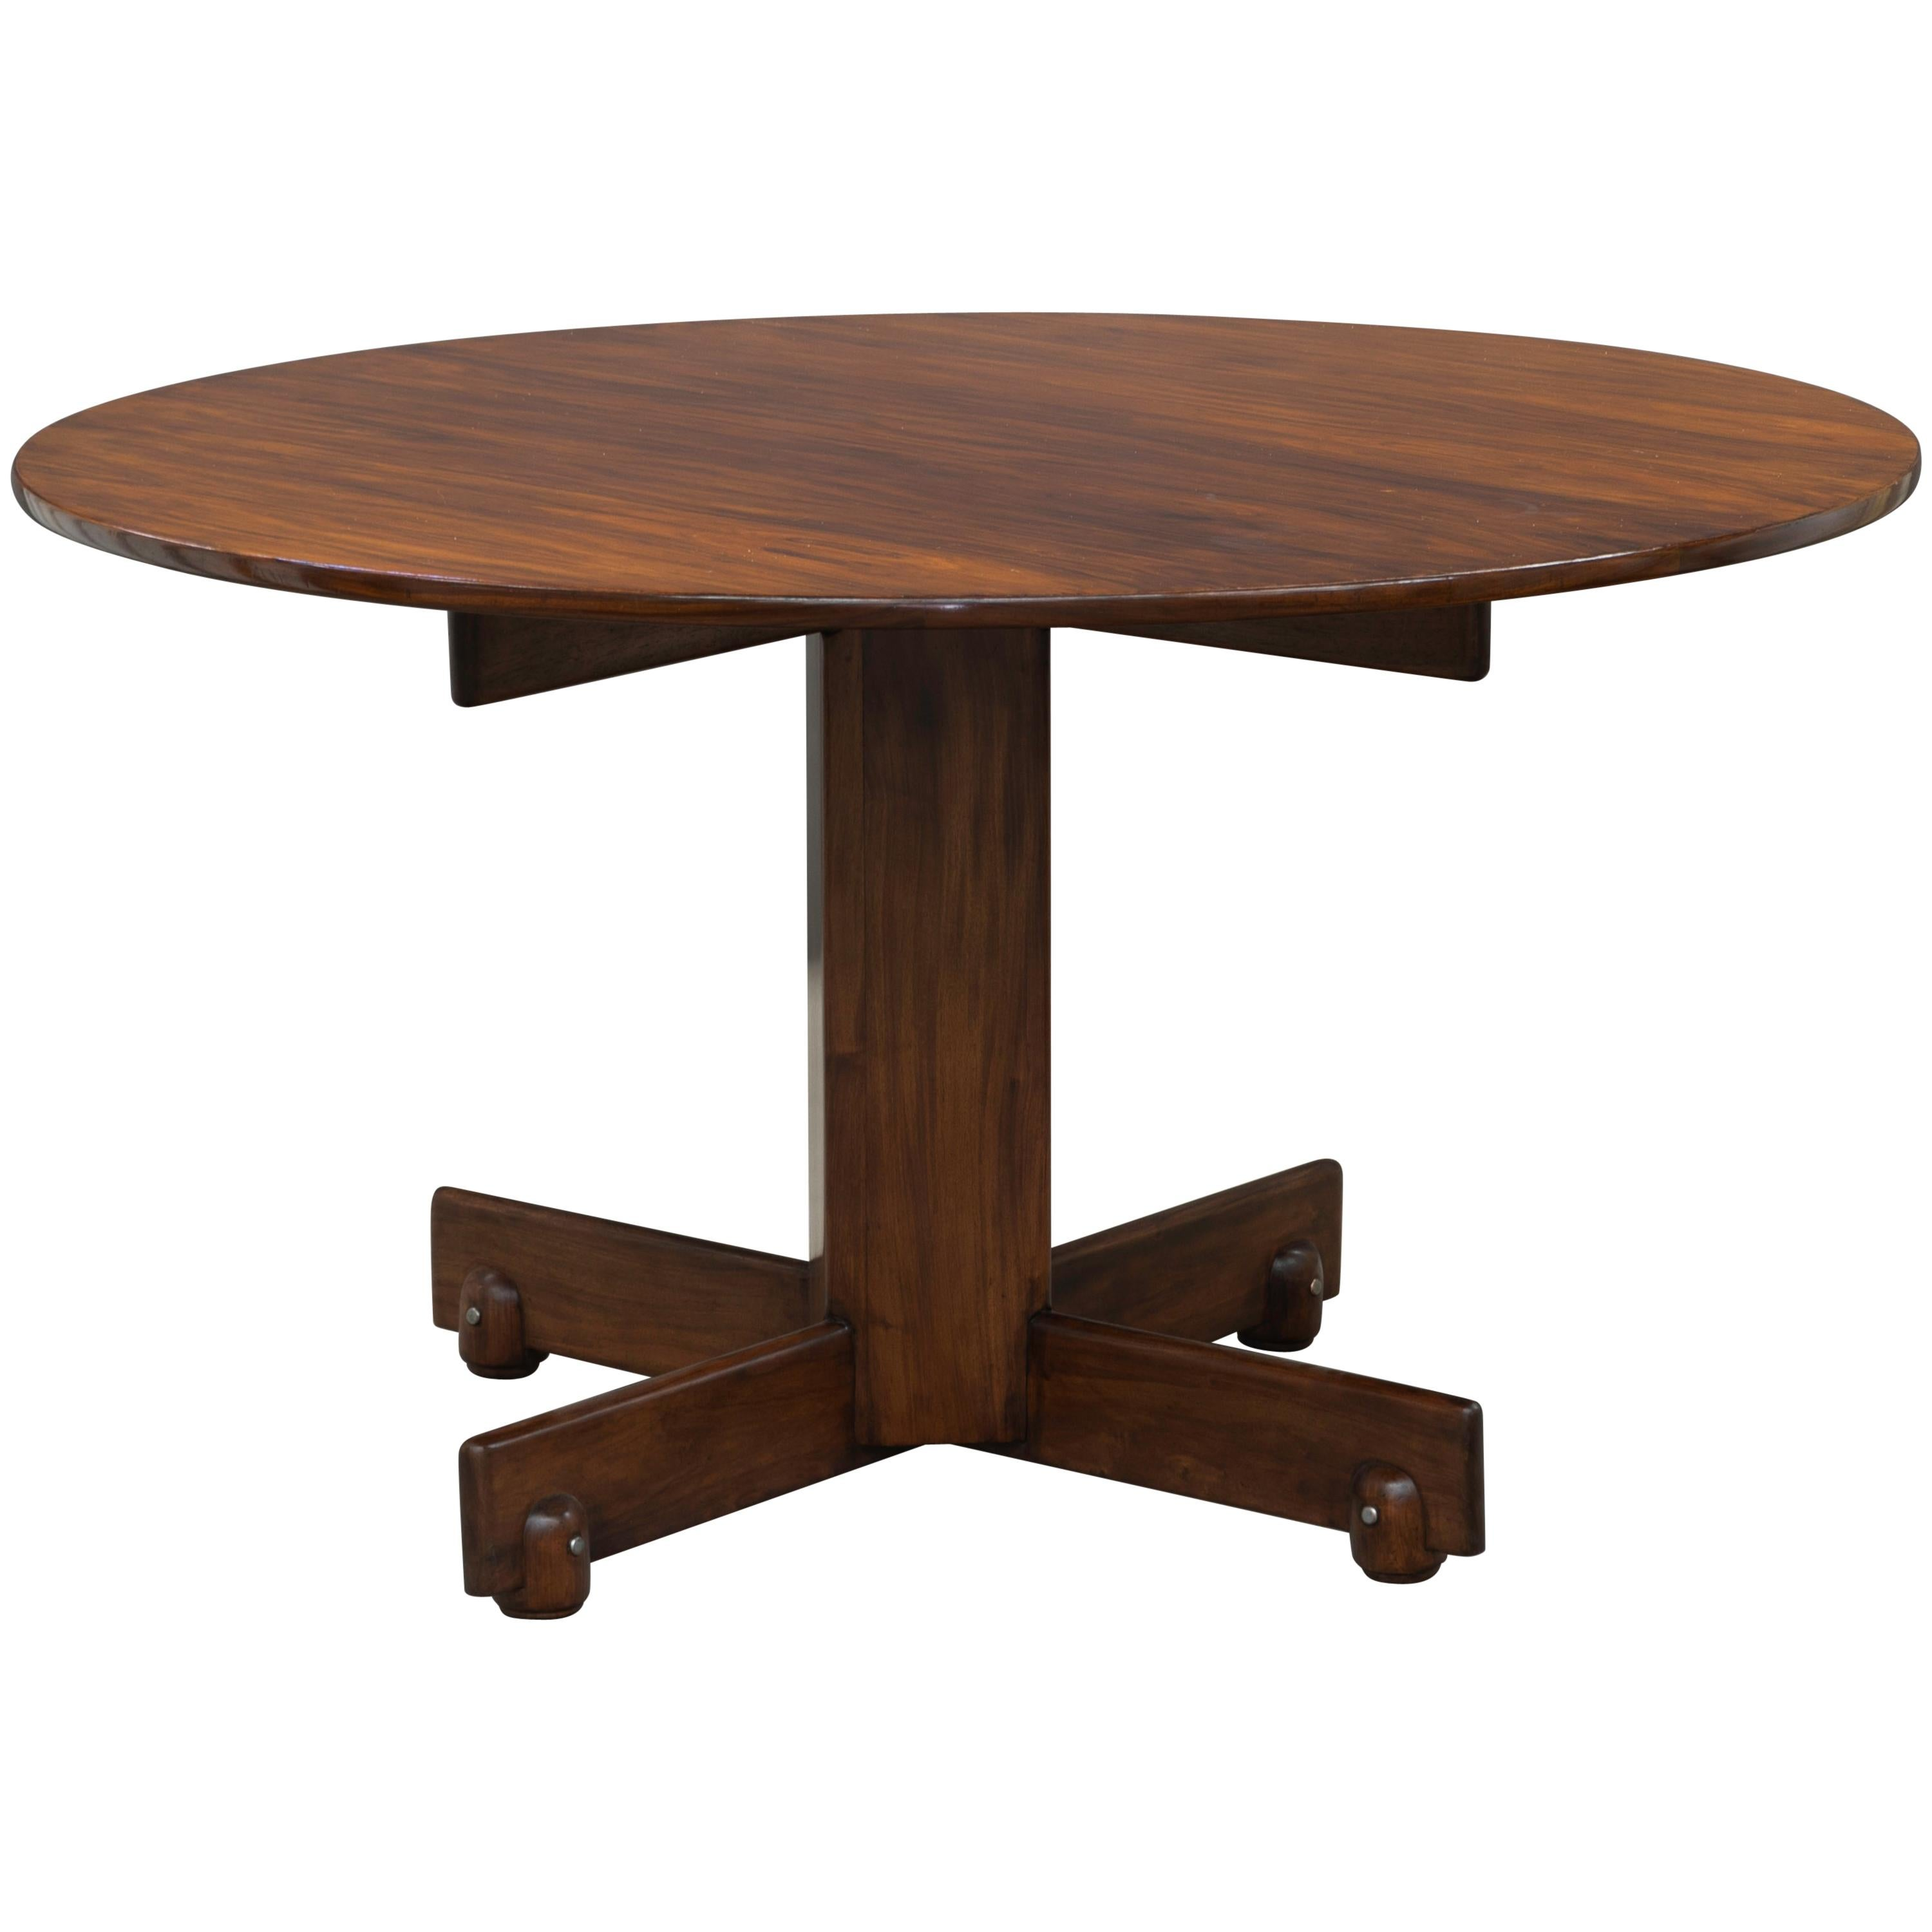 """""""Alex"""" Round Dining Table by Sergio Rodrigues, Brazilian Midcentury Design"""